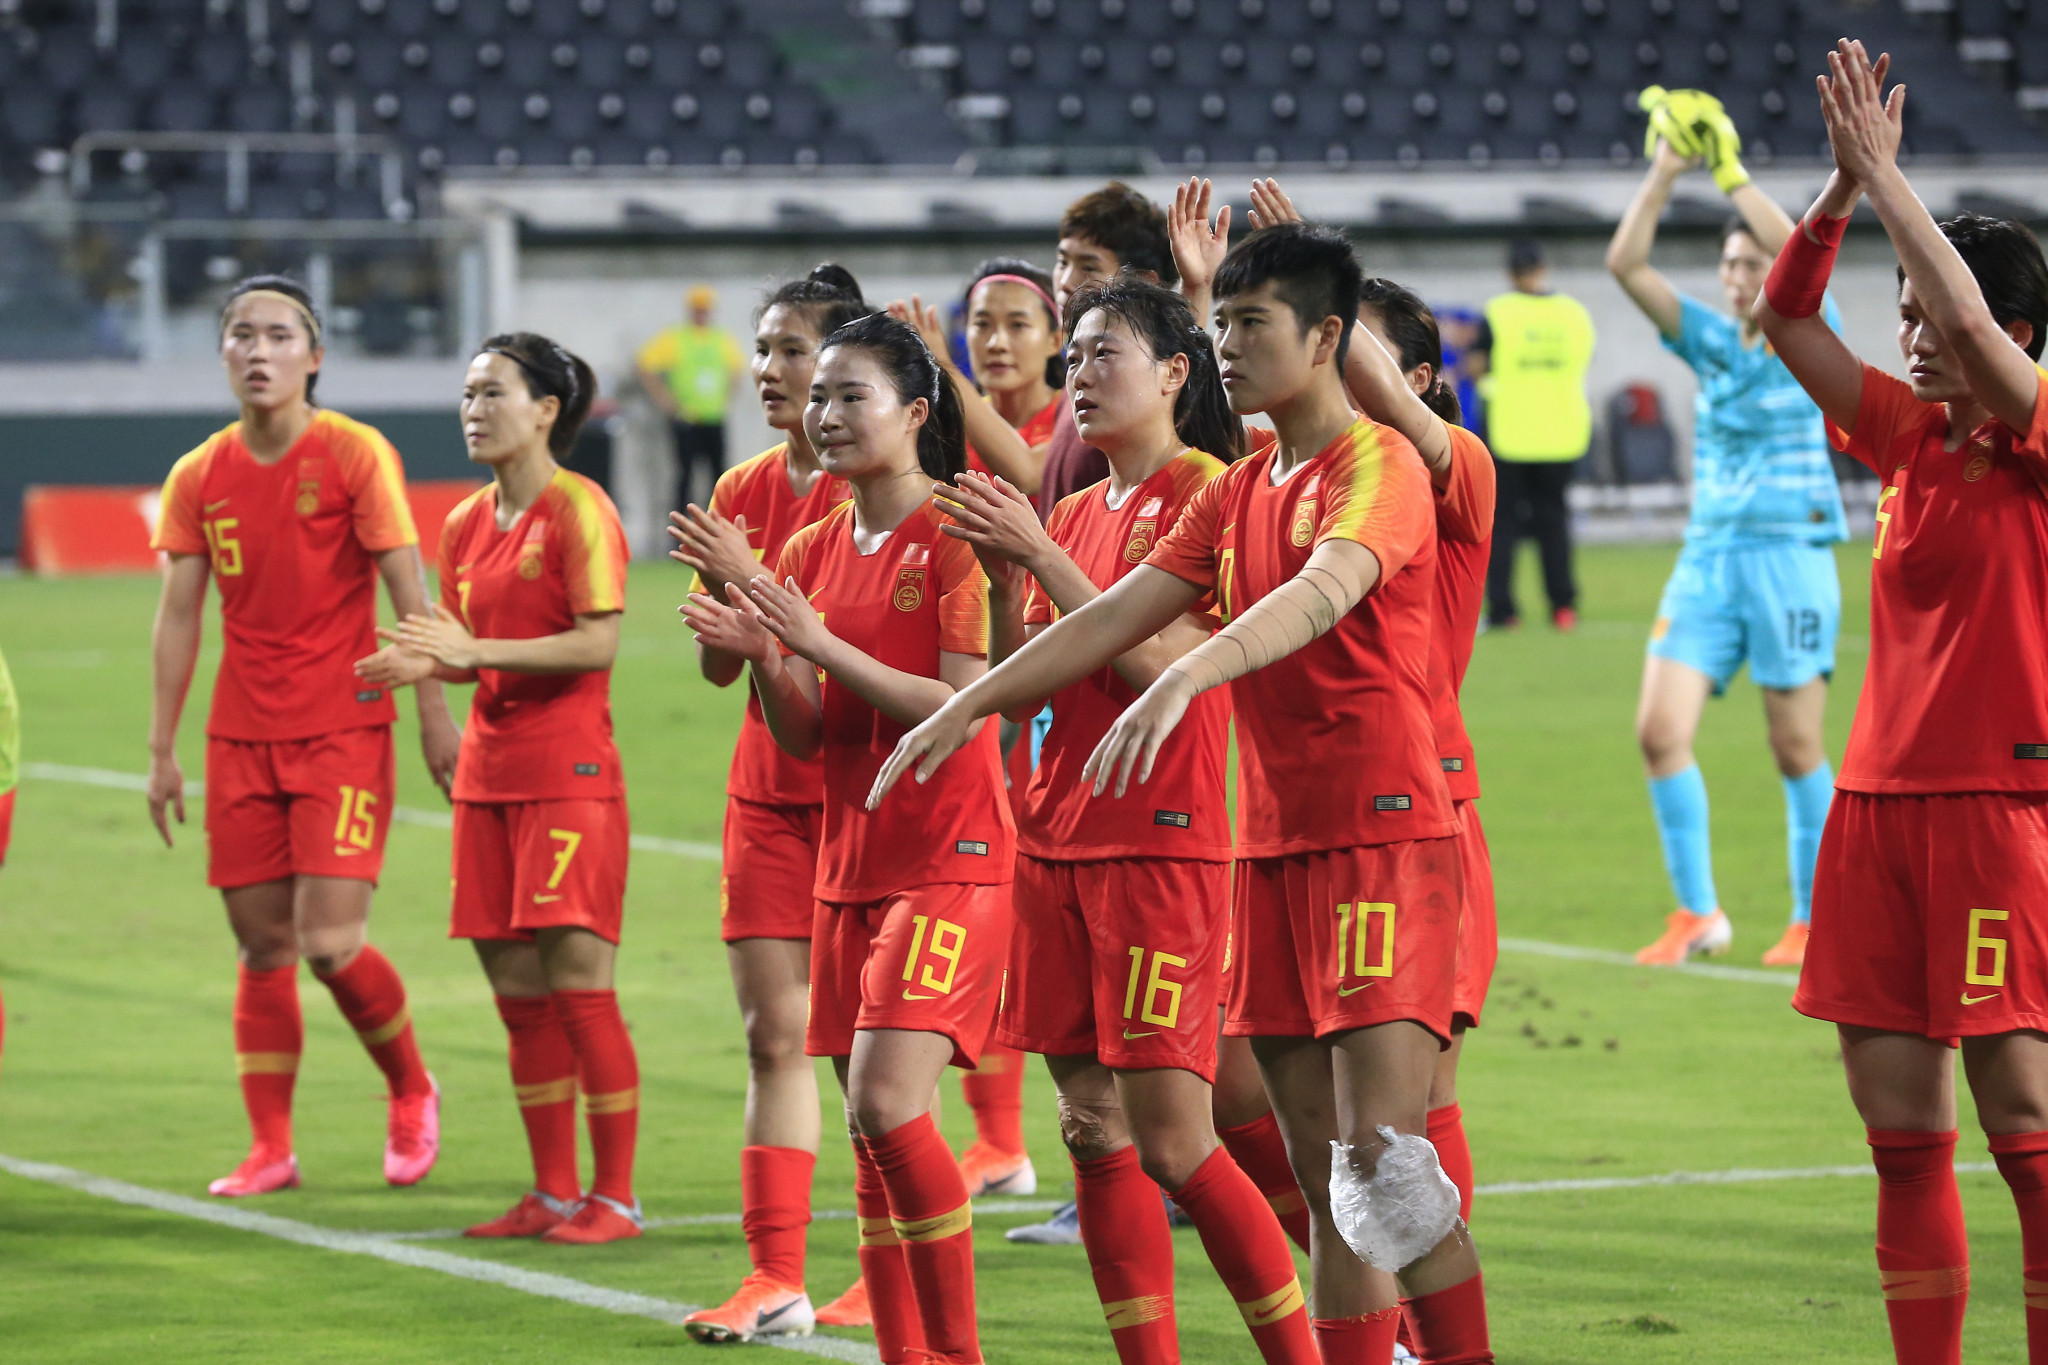 China and South Korea to meet in Tokyo 2020 women's football playoff in February